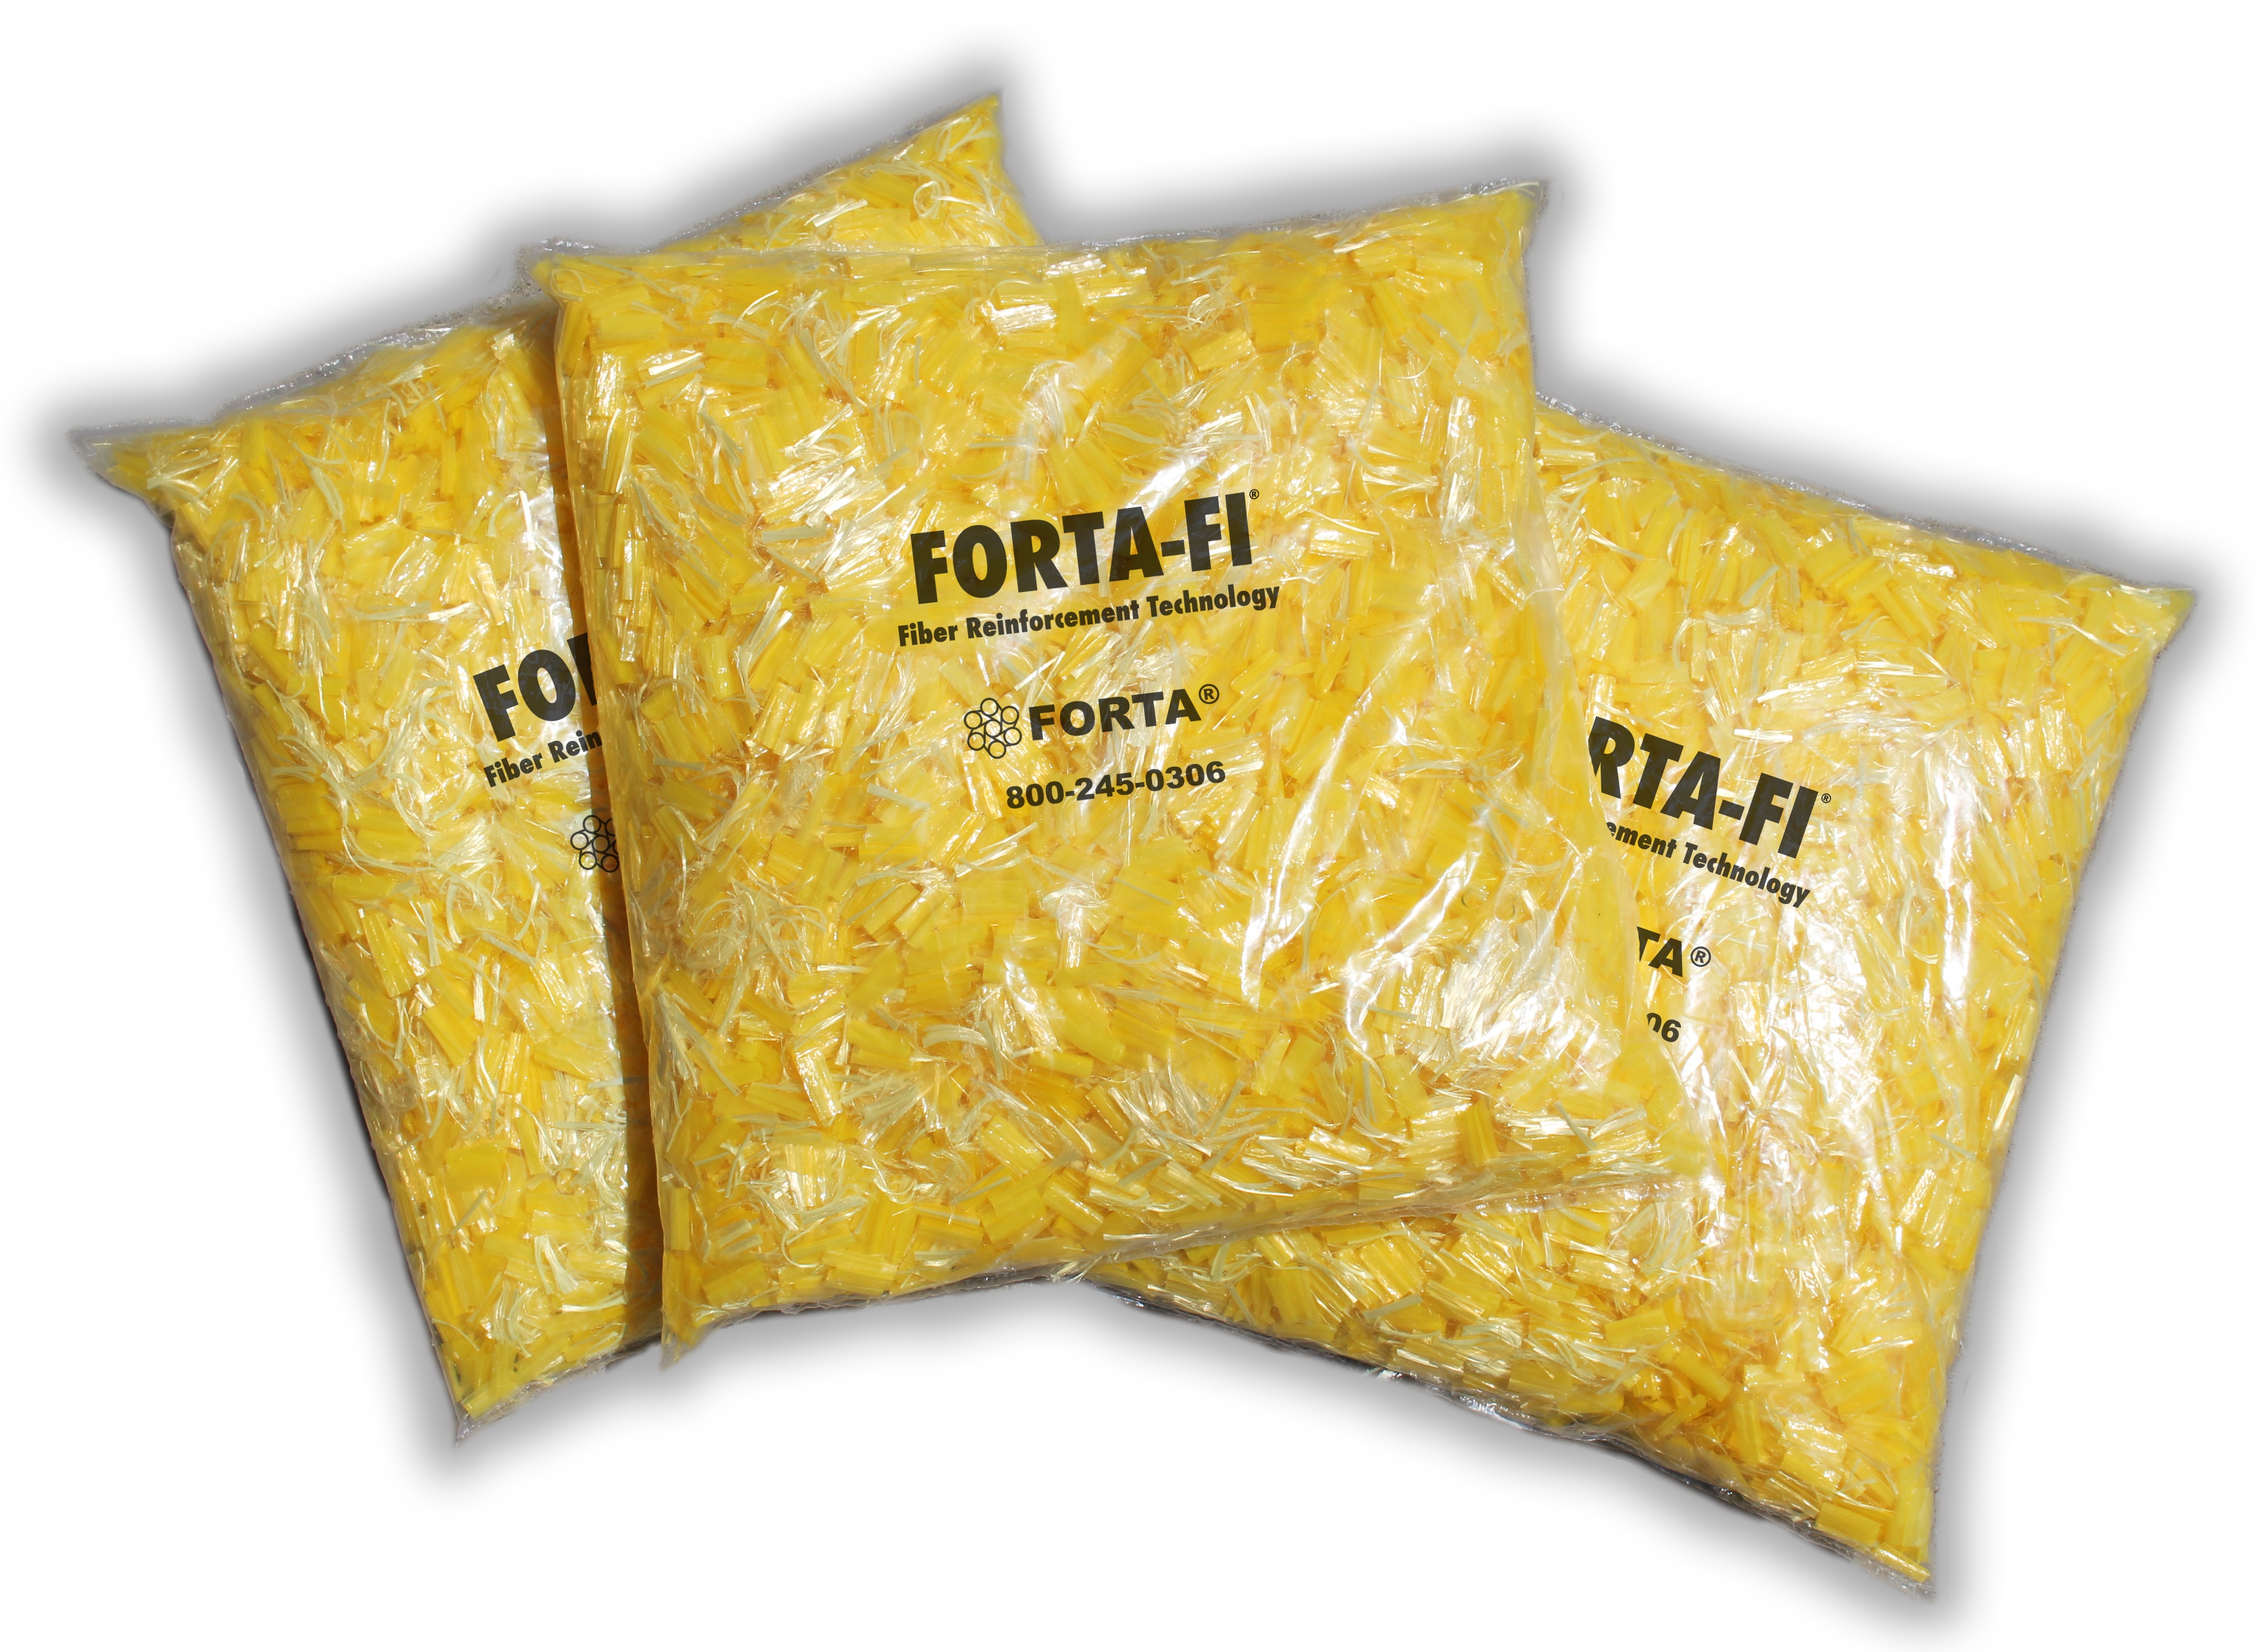 FORTA-FI was first developed in 1982, but has been tested and proved a success many times over since then, including its recent pilot project in O'Hara Township, Pennsylvania.